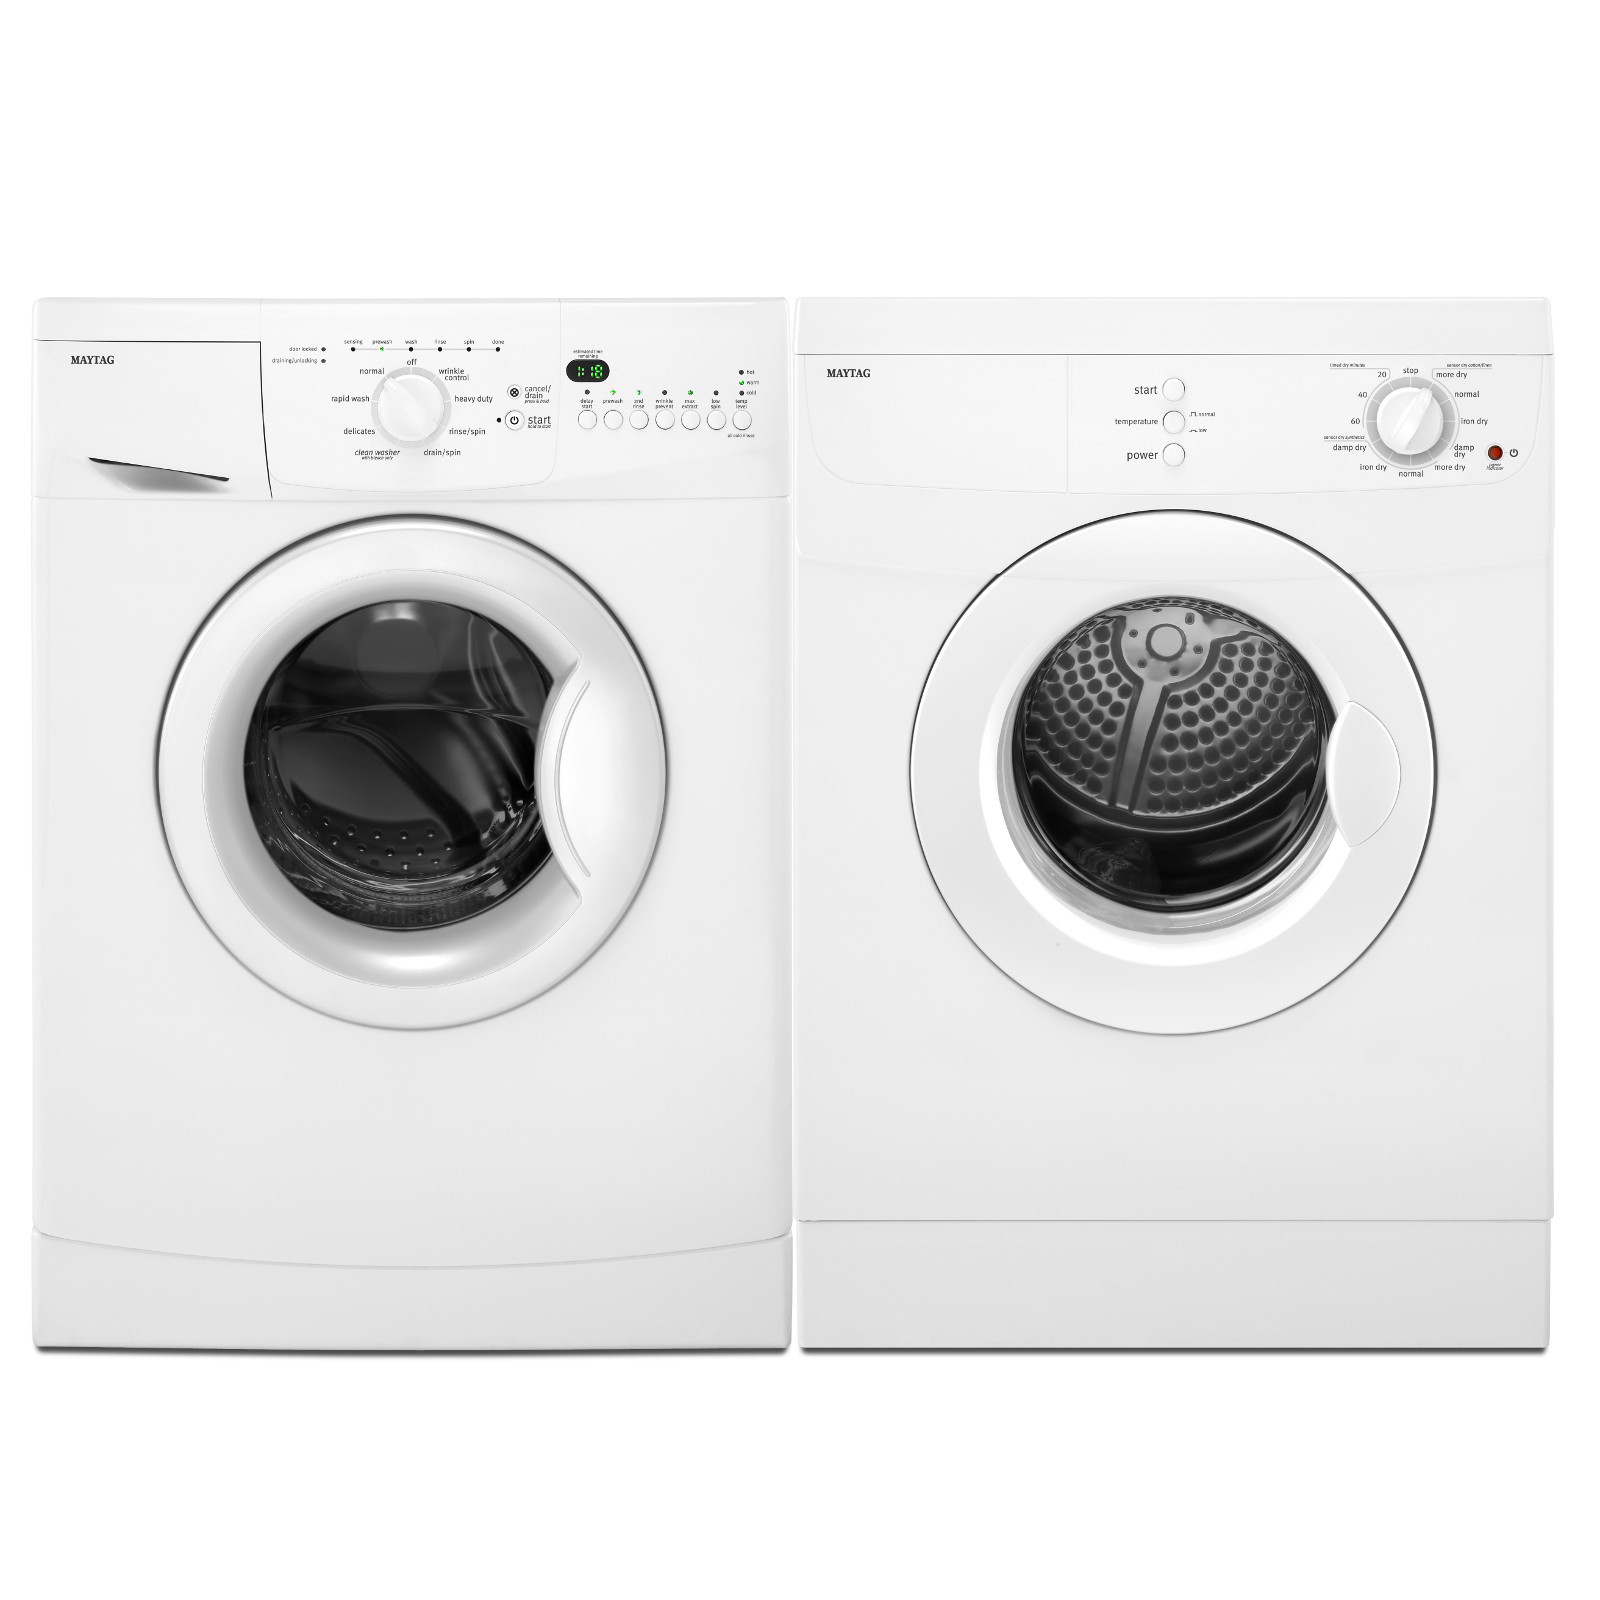 Maytag 2.0 cu. ft. Compact Front-Load Washer - White